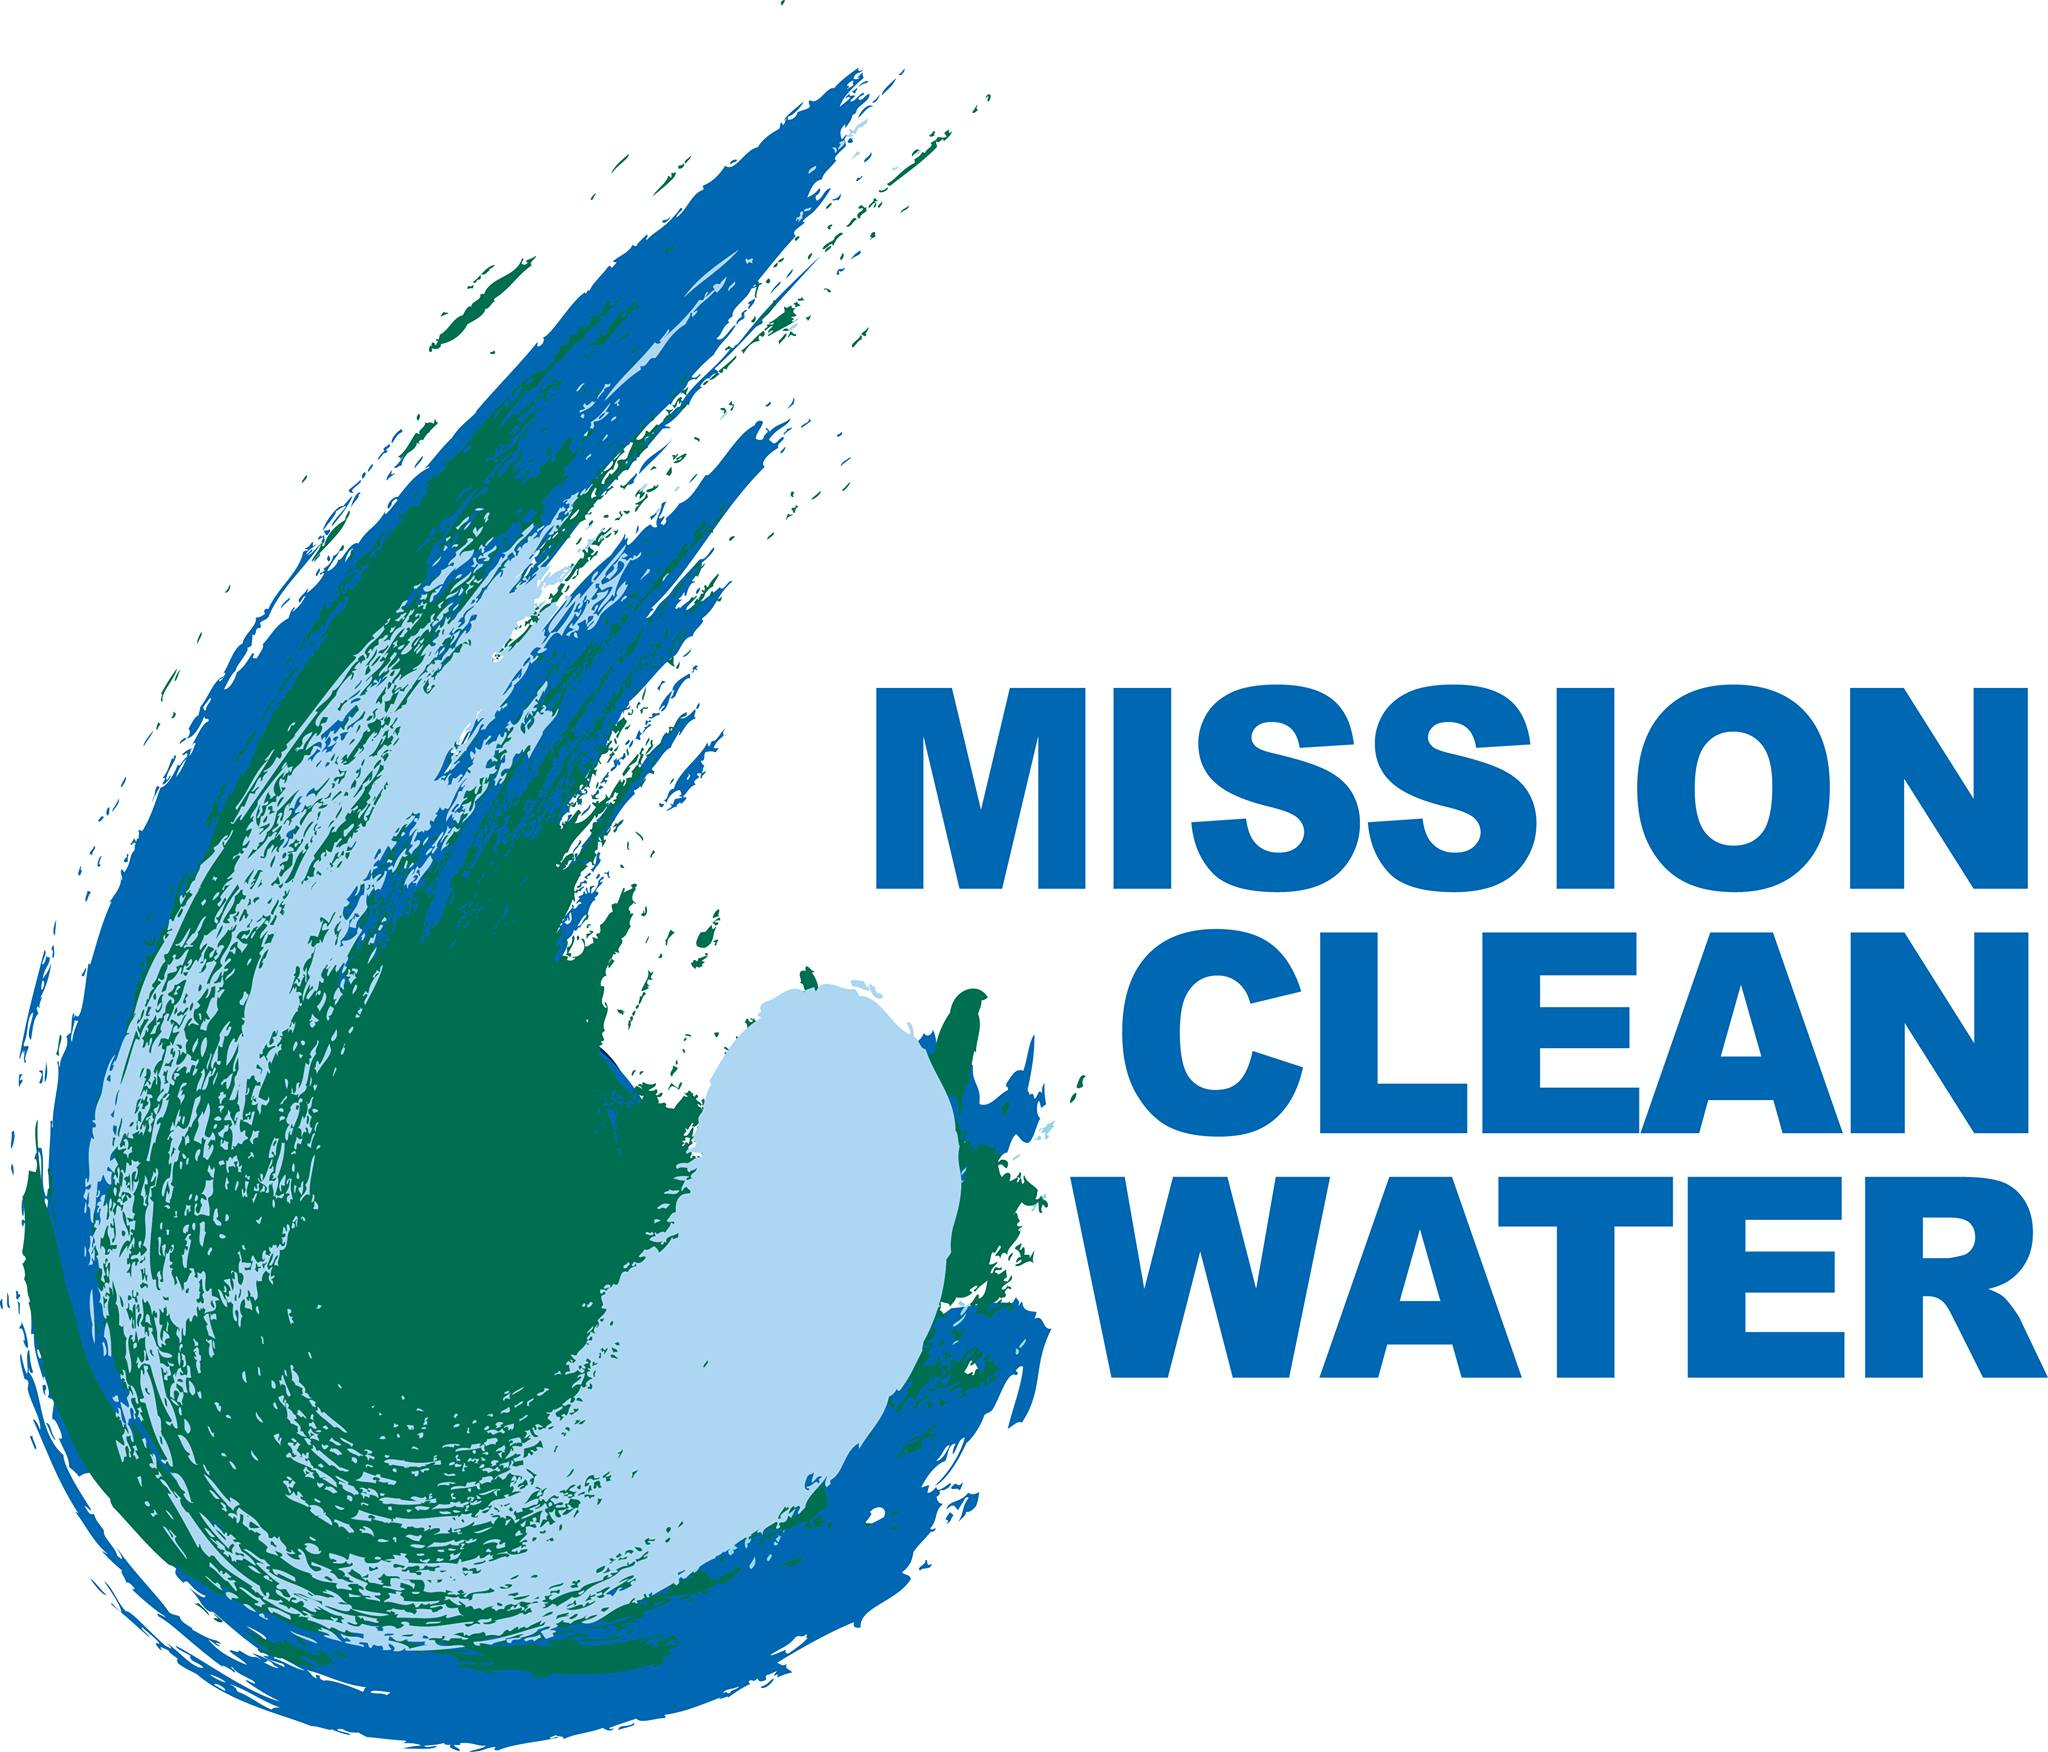 Mission Clear Water